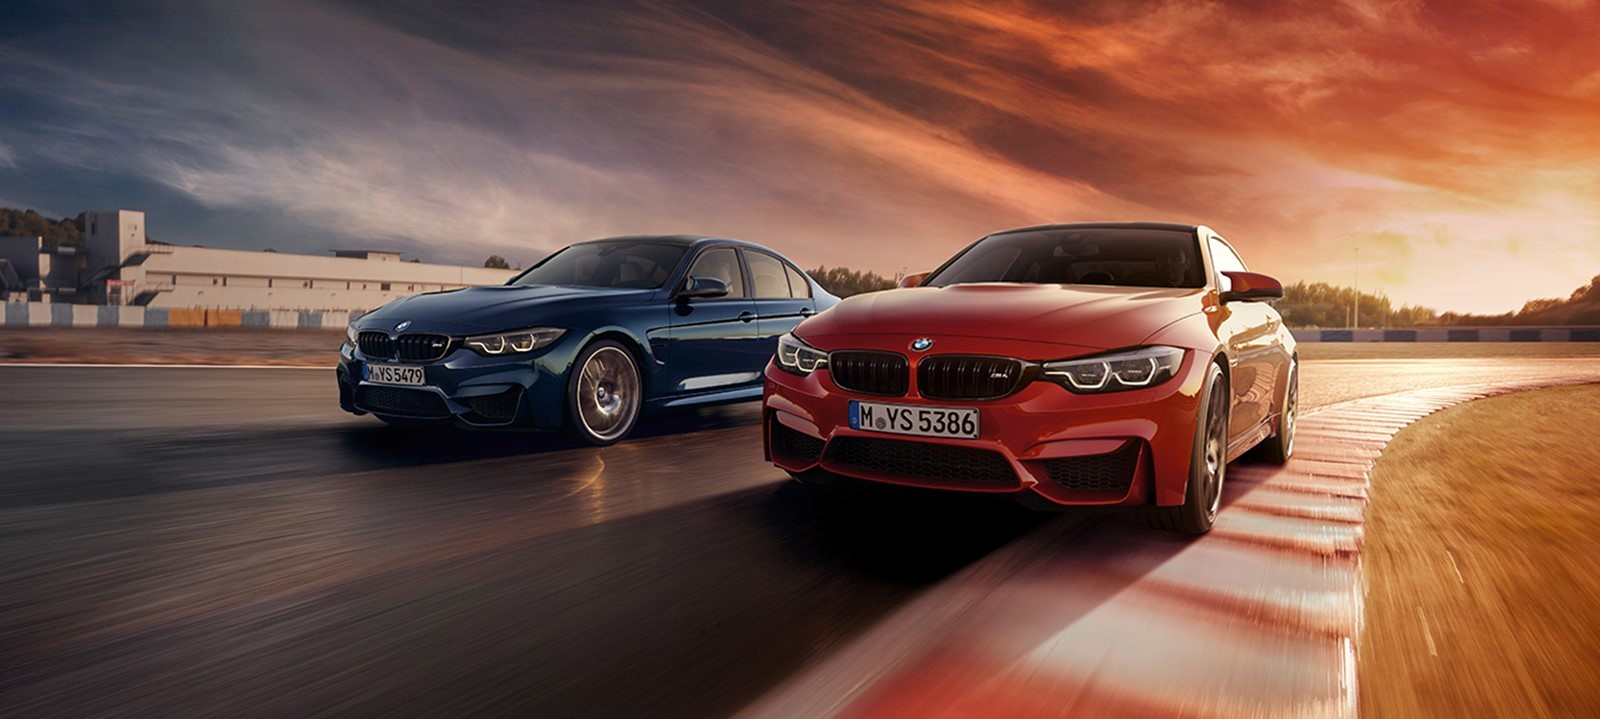 Specialist Cars BMW Migrate To Latest WiFi Technology